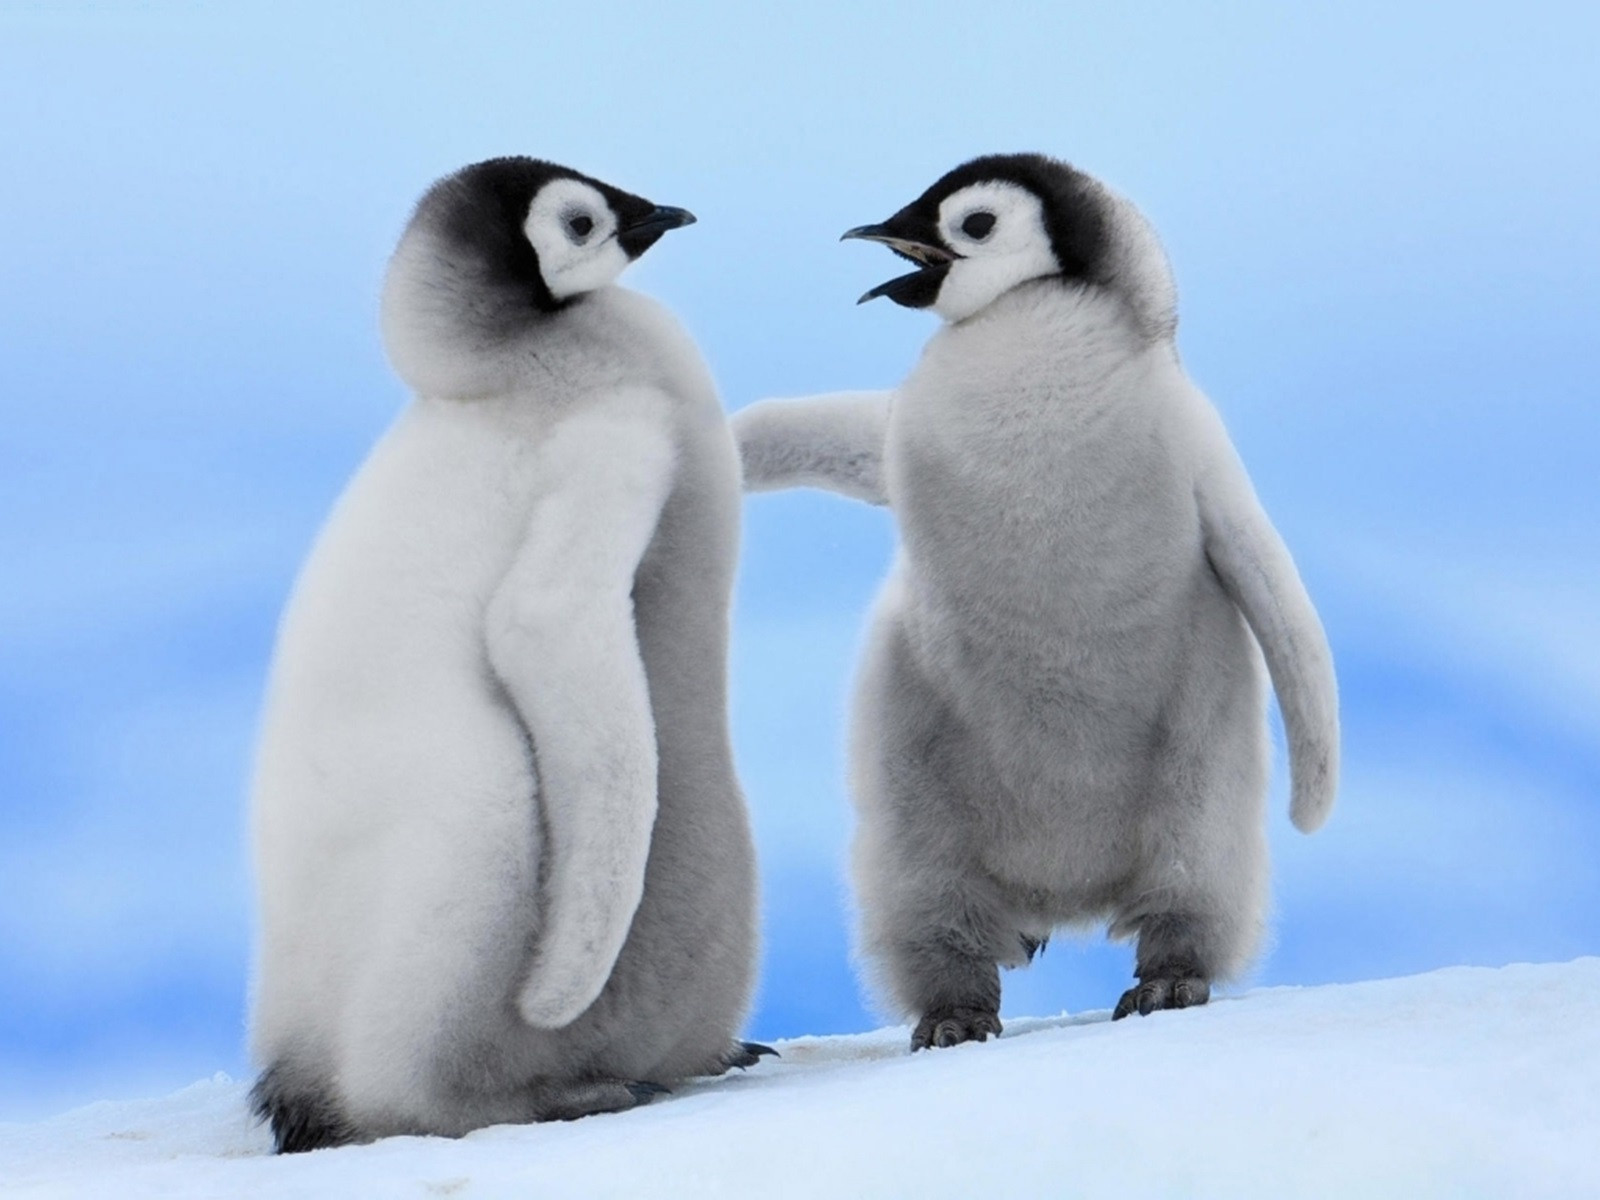 Cute Penguins Couple PhotosHD WallpapersImagesPictures 1600x1200